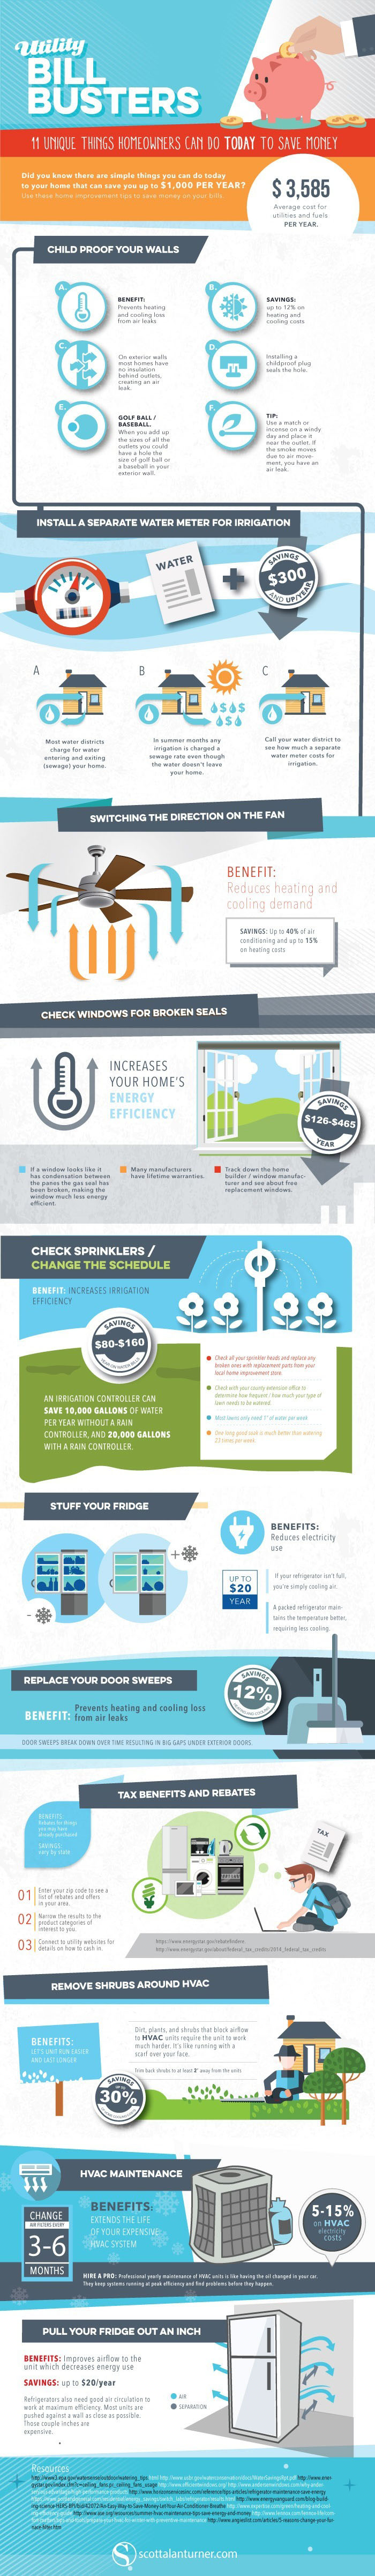 utility bill, reduce utility bill, reduce energy use, saving energy, save power, reduce power use, saving energy, infographic, tips to save energy, conservation, reducing energy use, reader submission